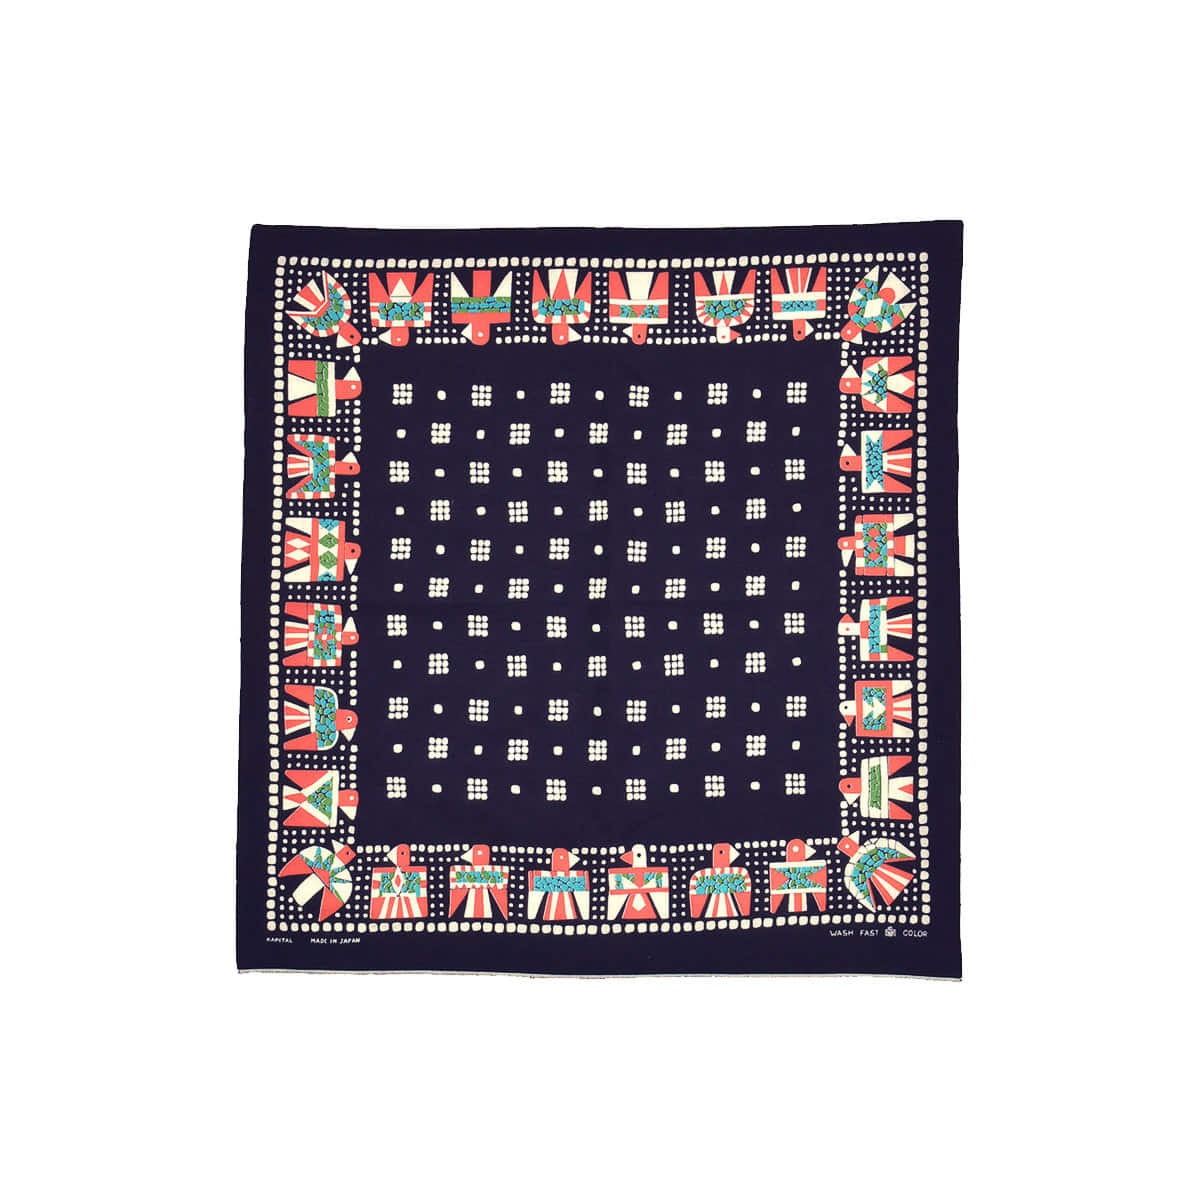 [KAPITAL] FAST COLOR SELVEDGE BANDANA (THUNDERBIRD) 'BLACK'